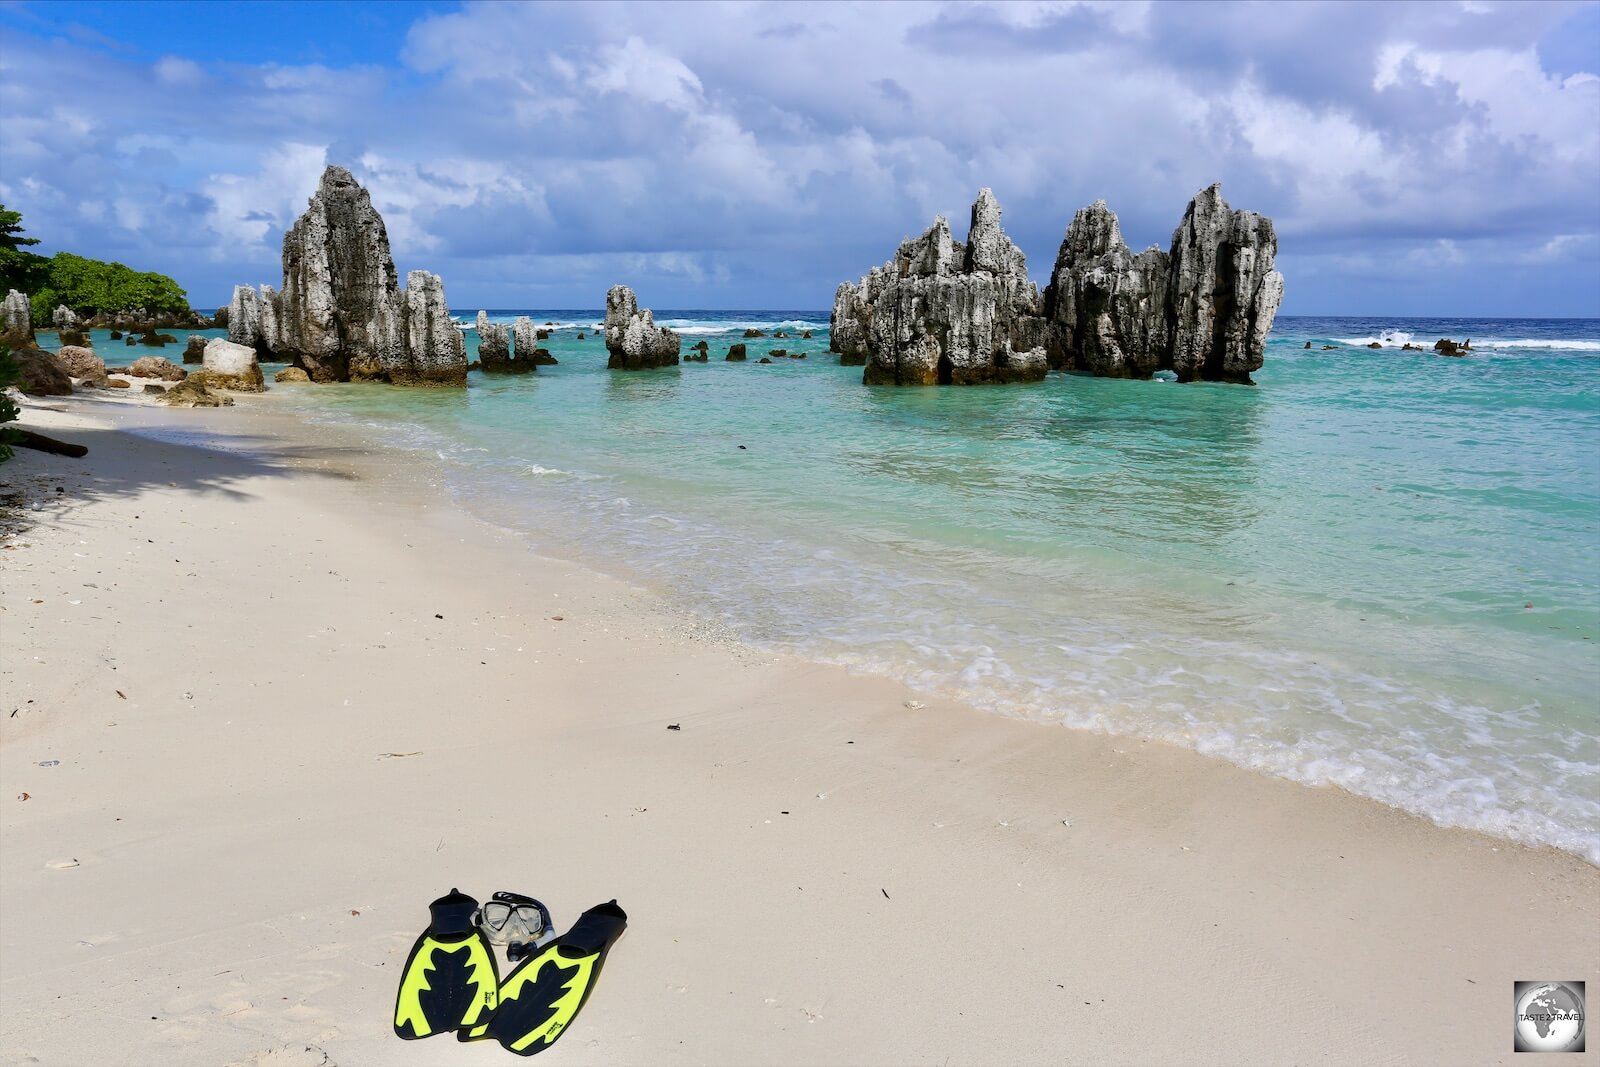 Ready to do some snorkelling among the limestone pinnacles at Anibare beach.